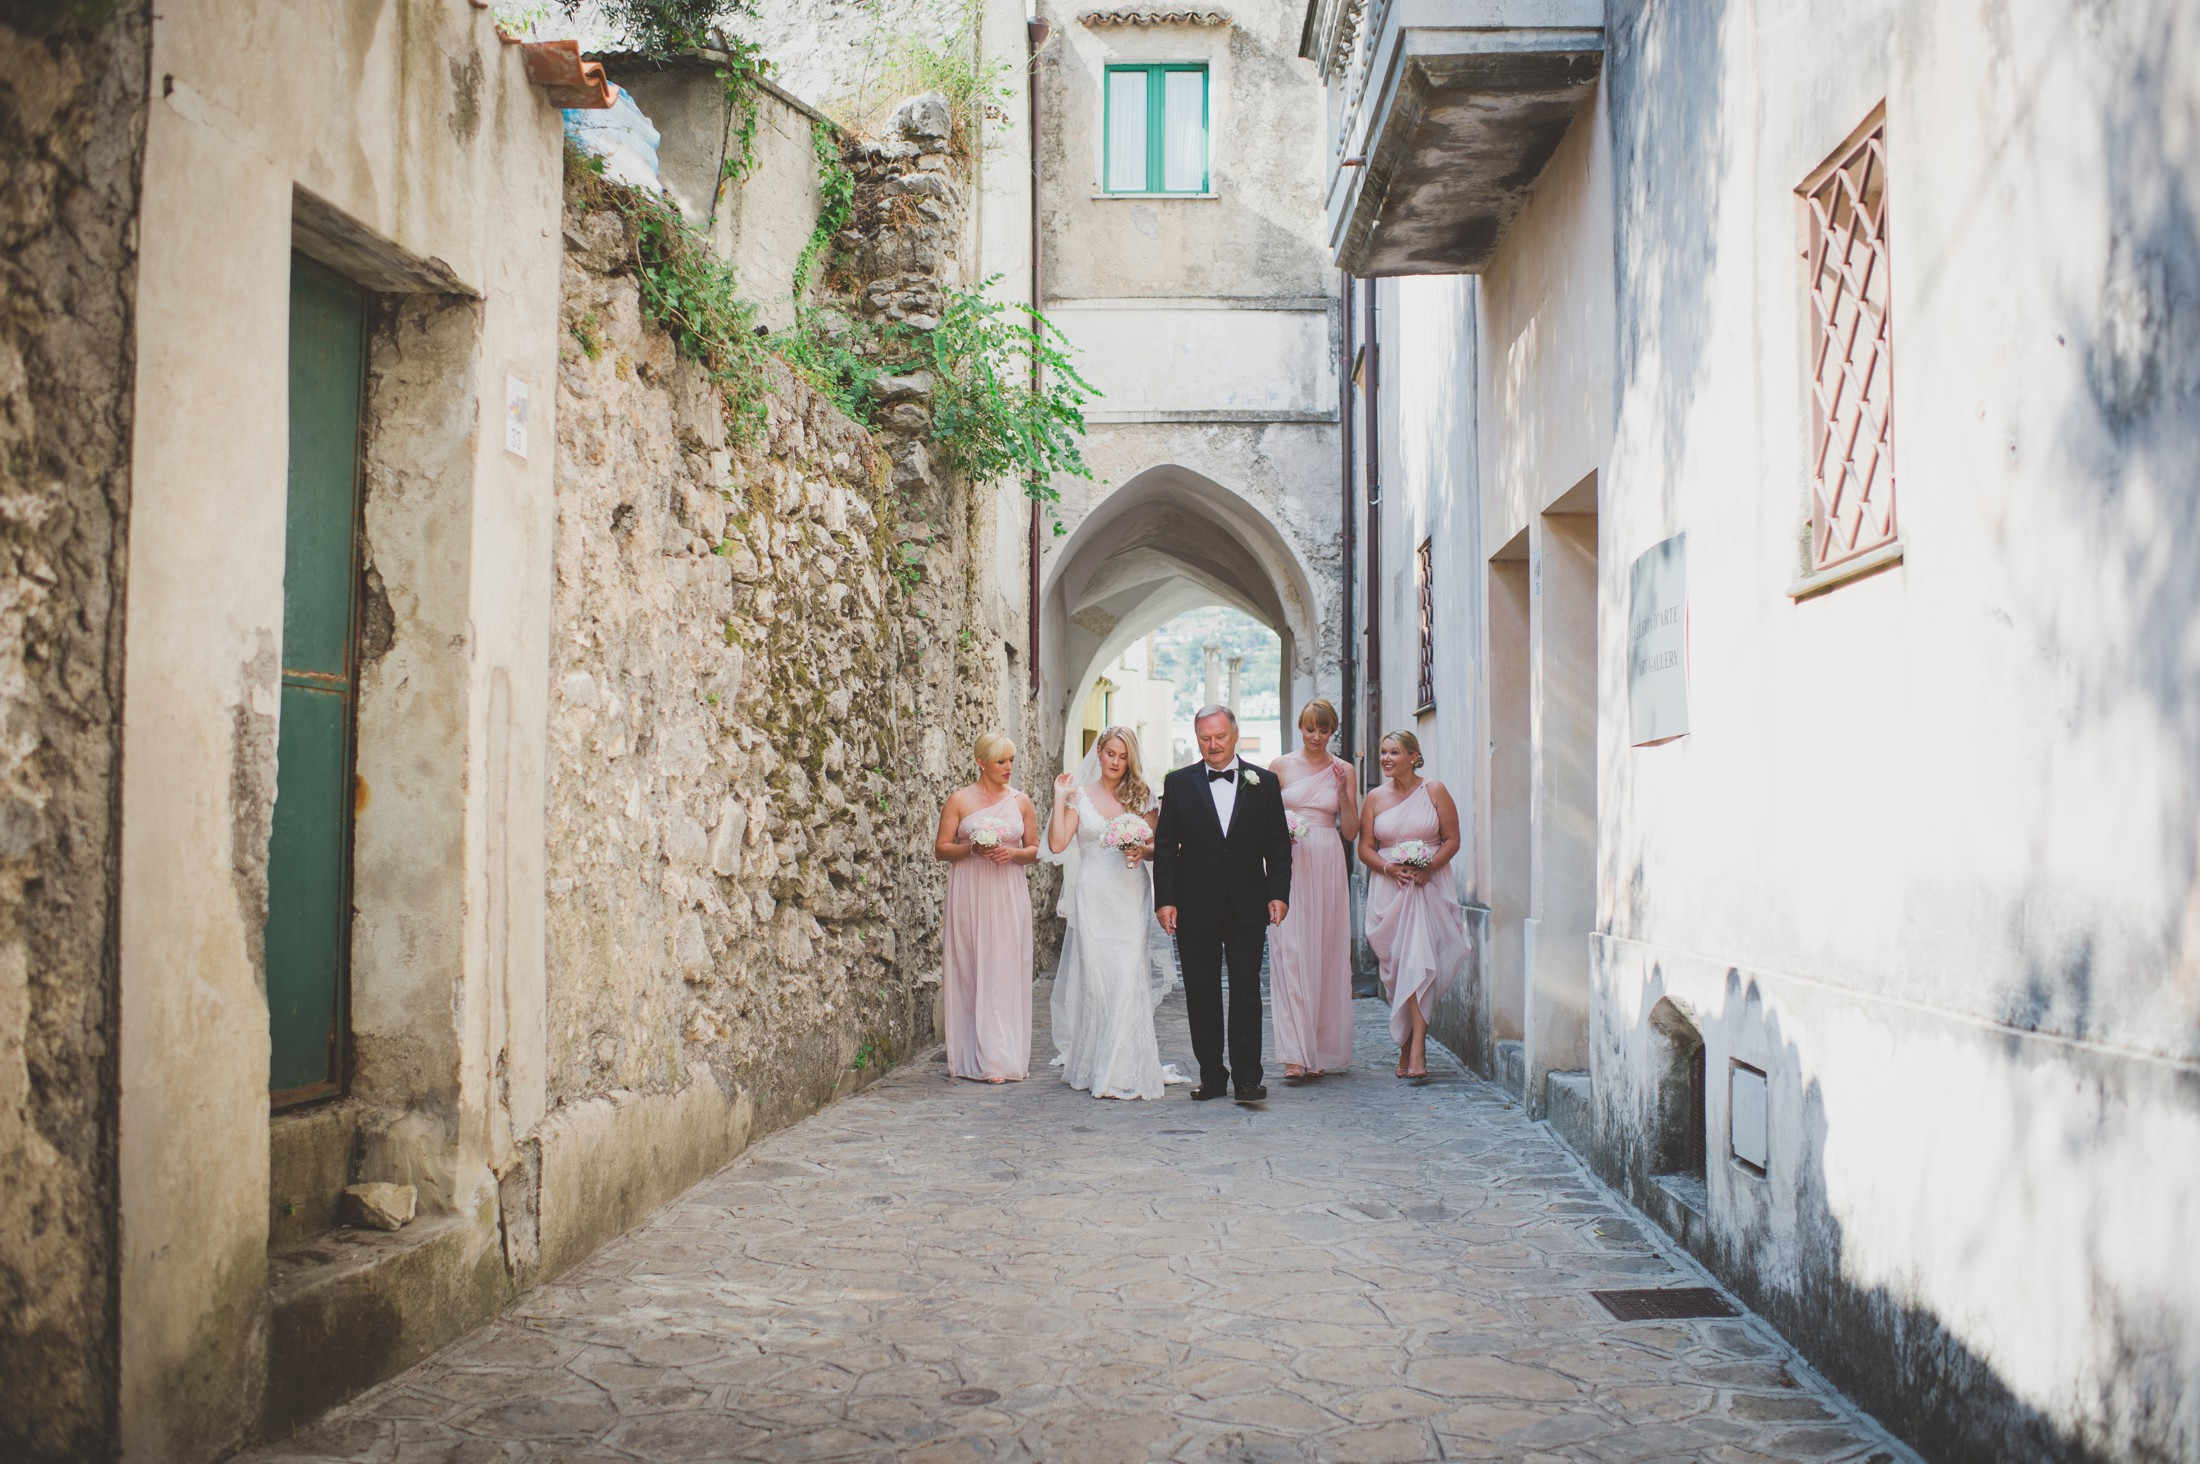 wedding in ravello the bride with her father and the bridesmaids walking to the wedding ceremony